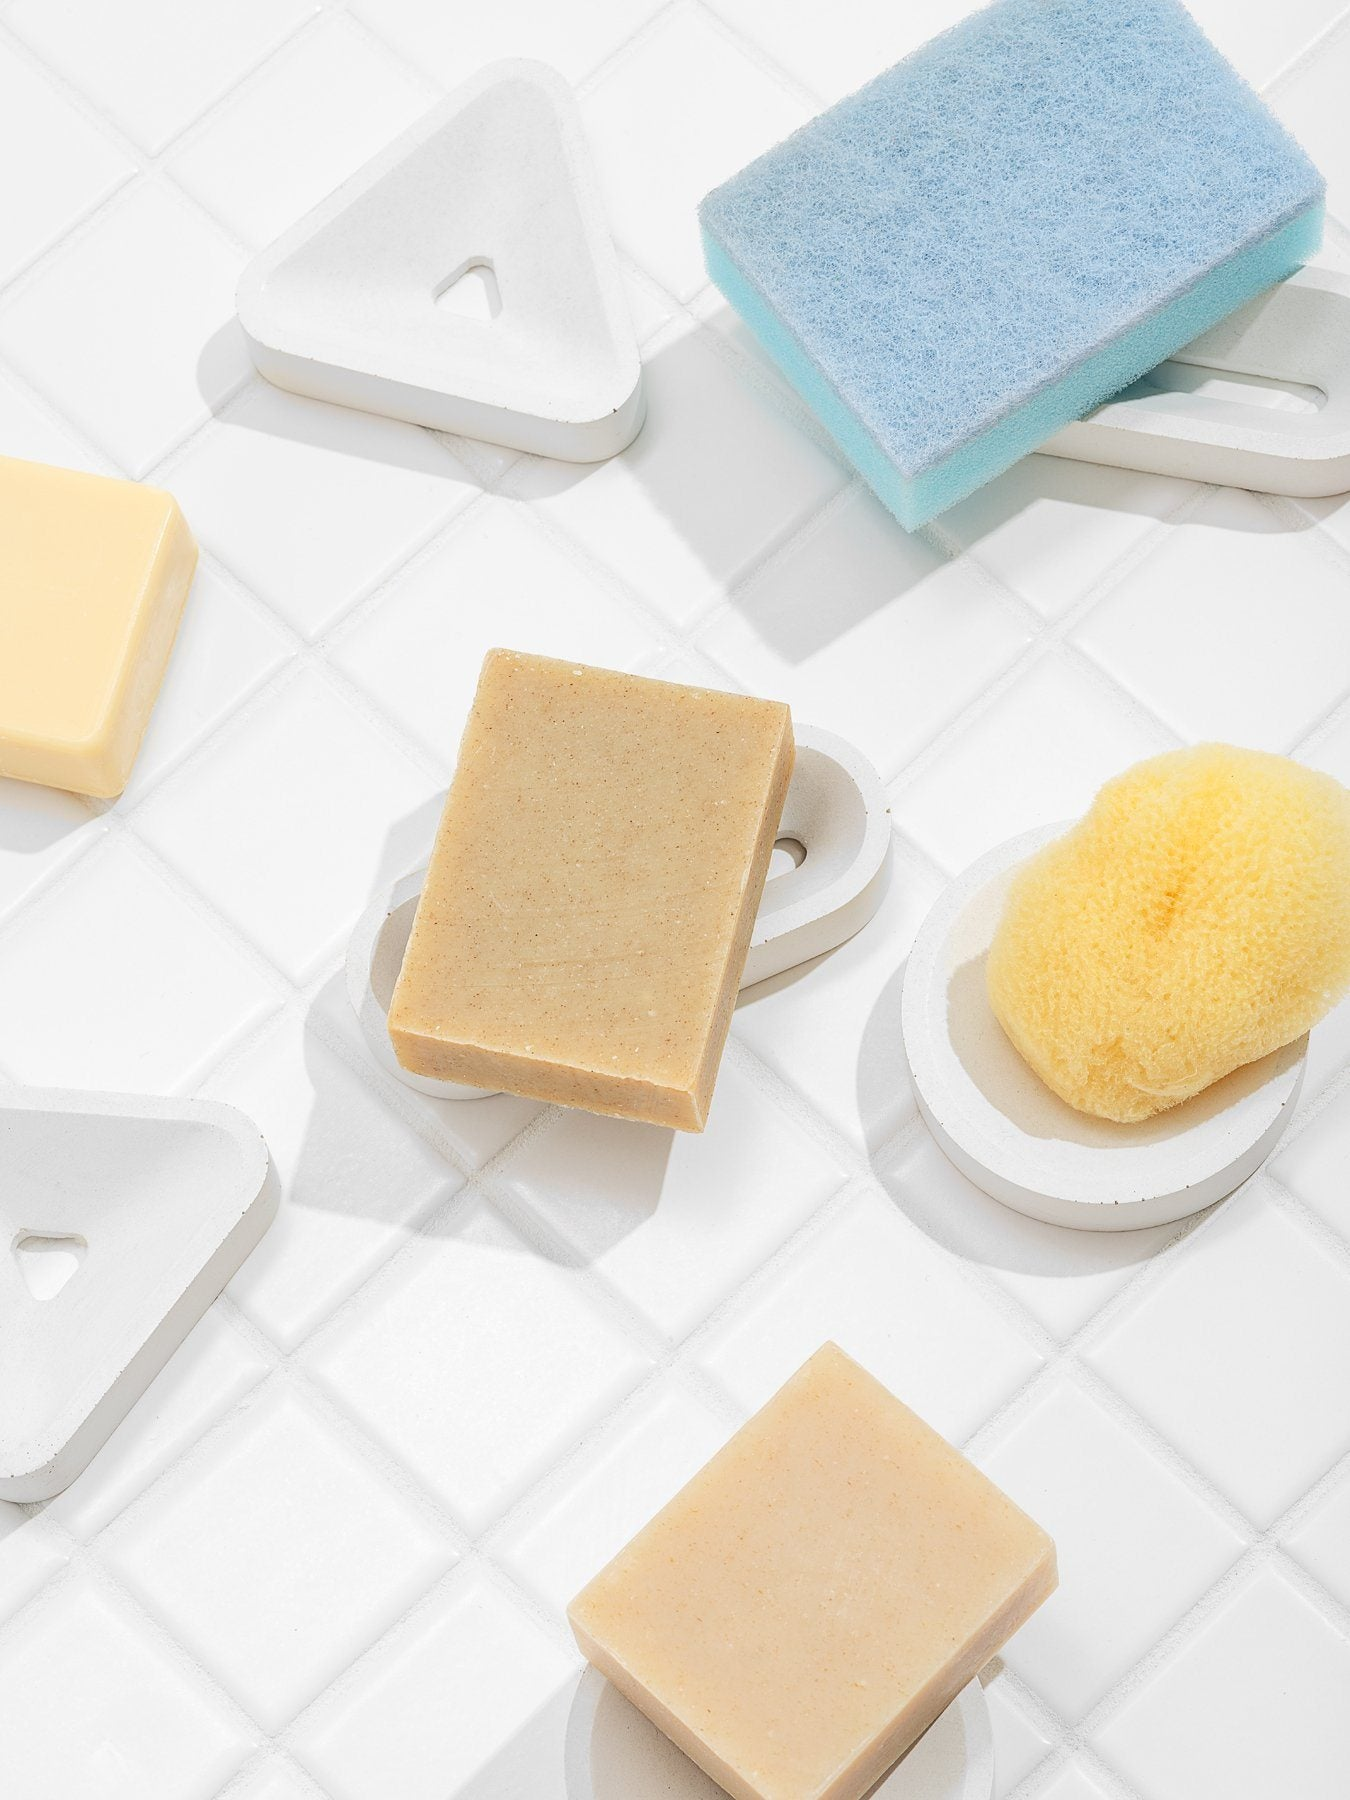 Fruitsuper, Soap + Sponge Stands, - Placewares